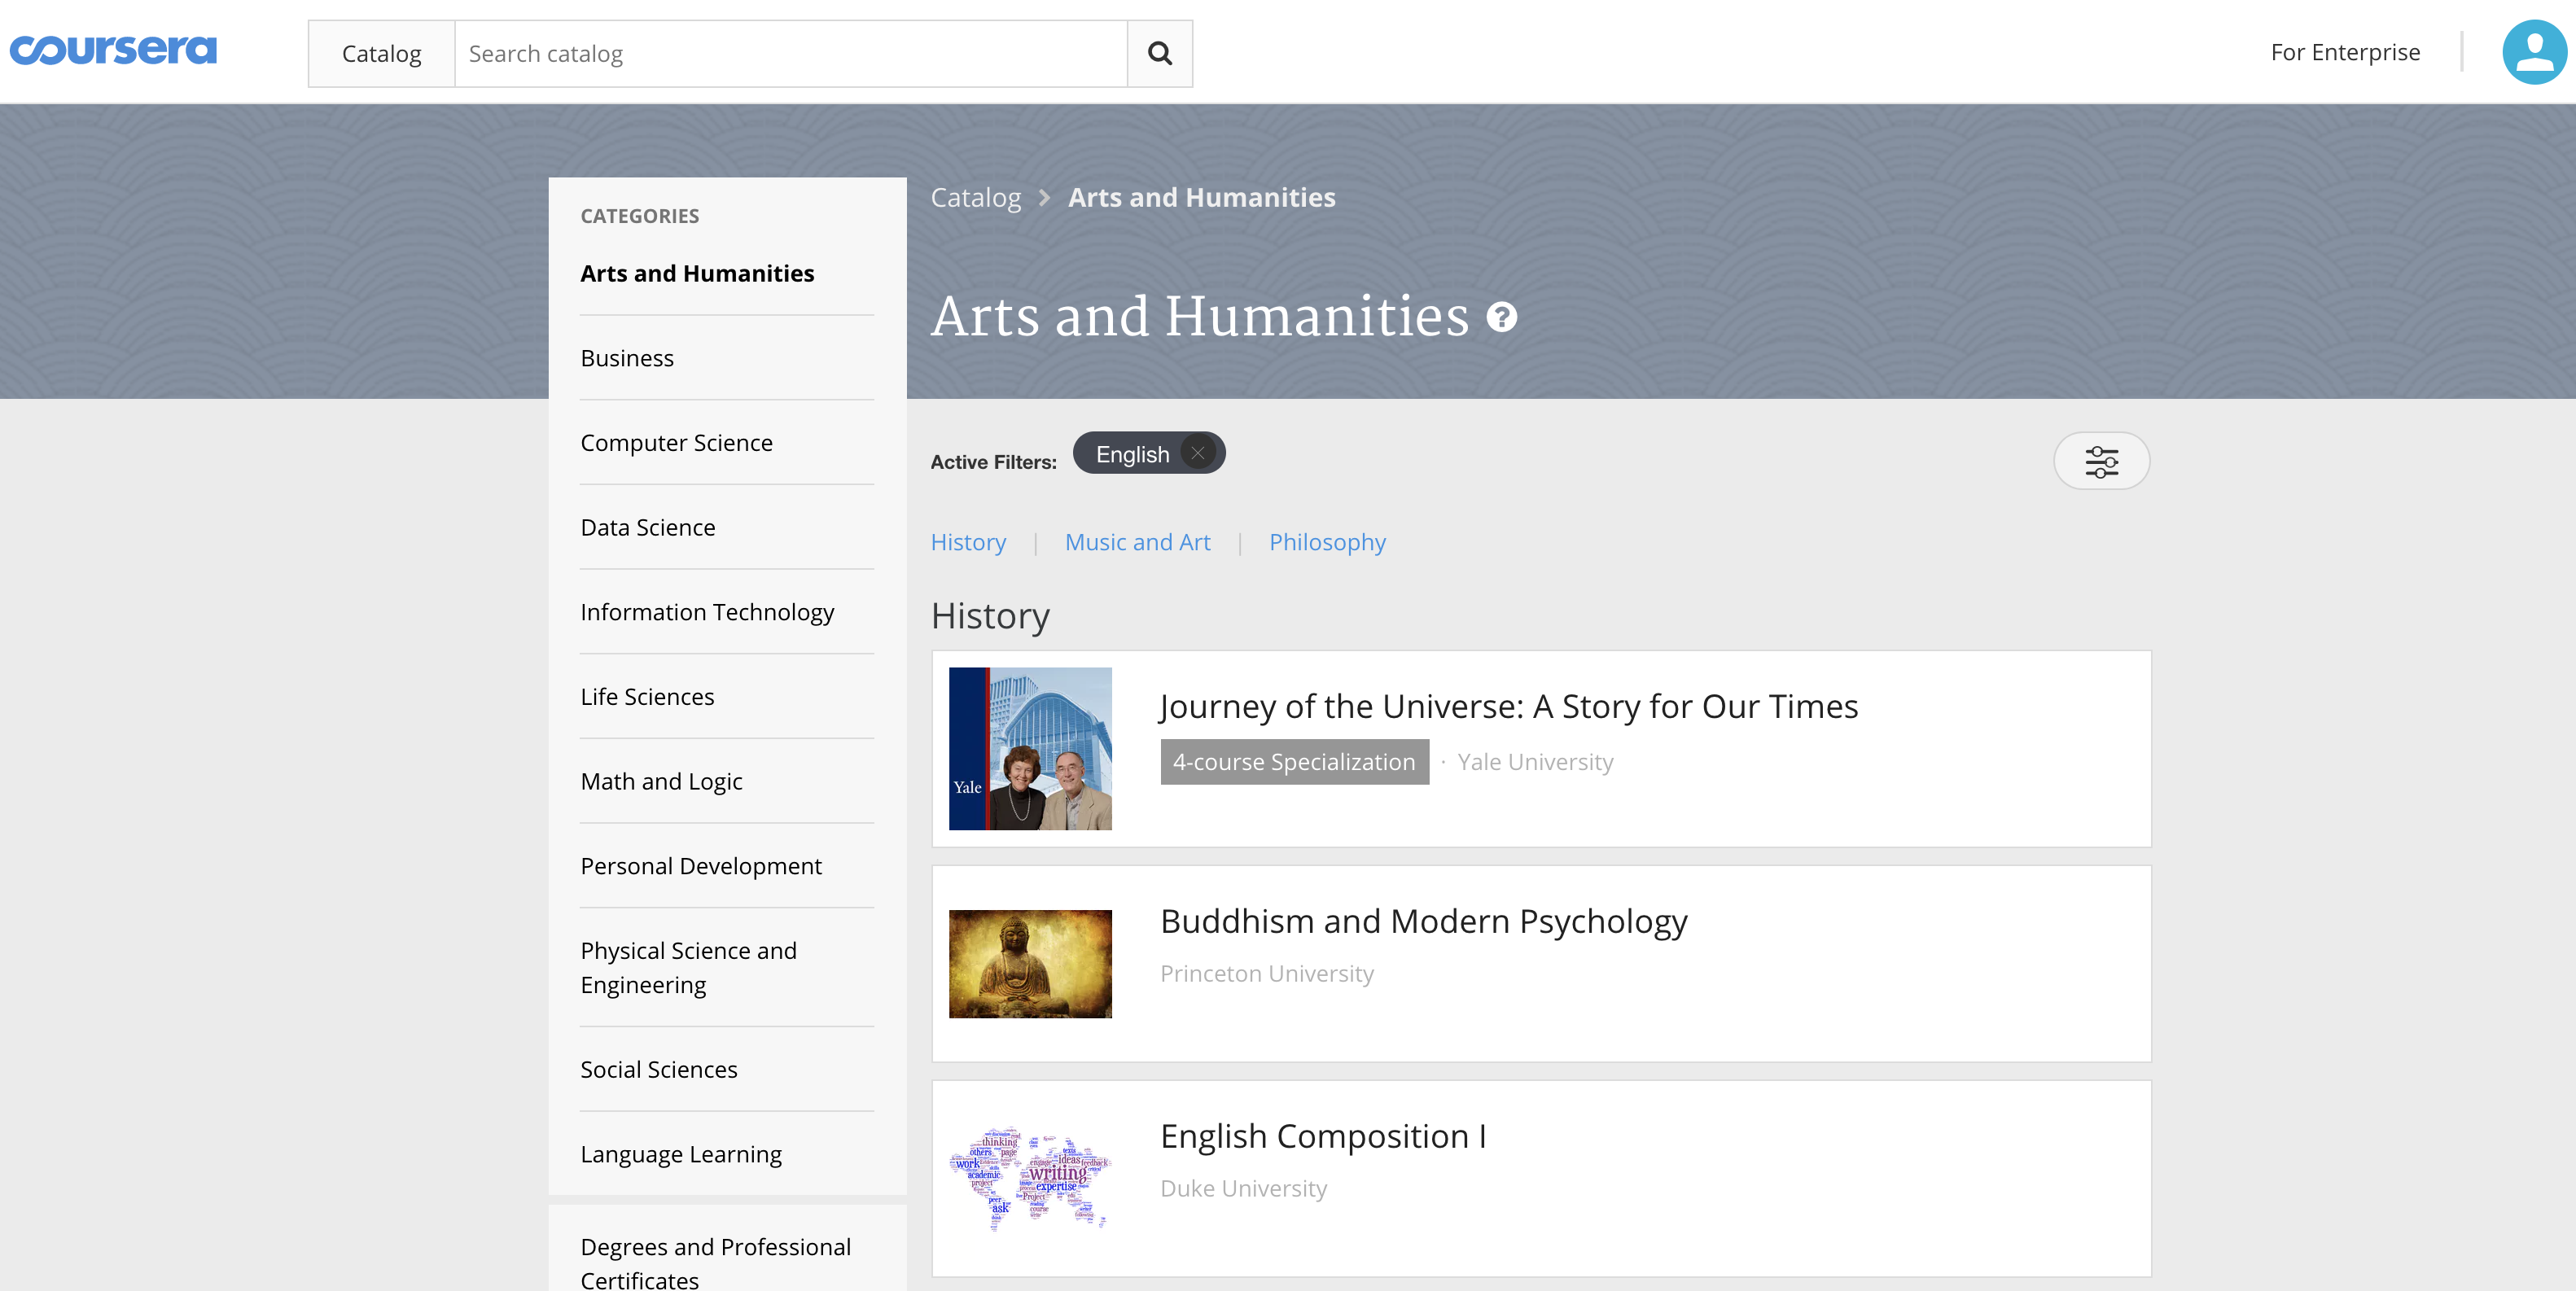 screencap of Coursera s catalog with Arts and Humanities courses featured